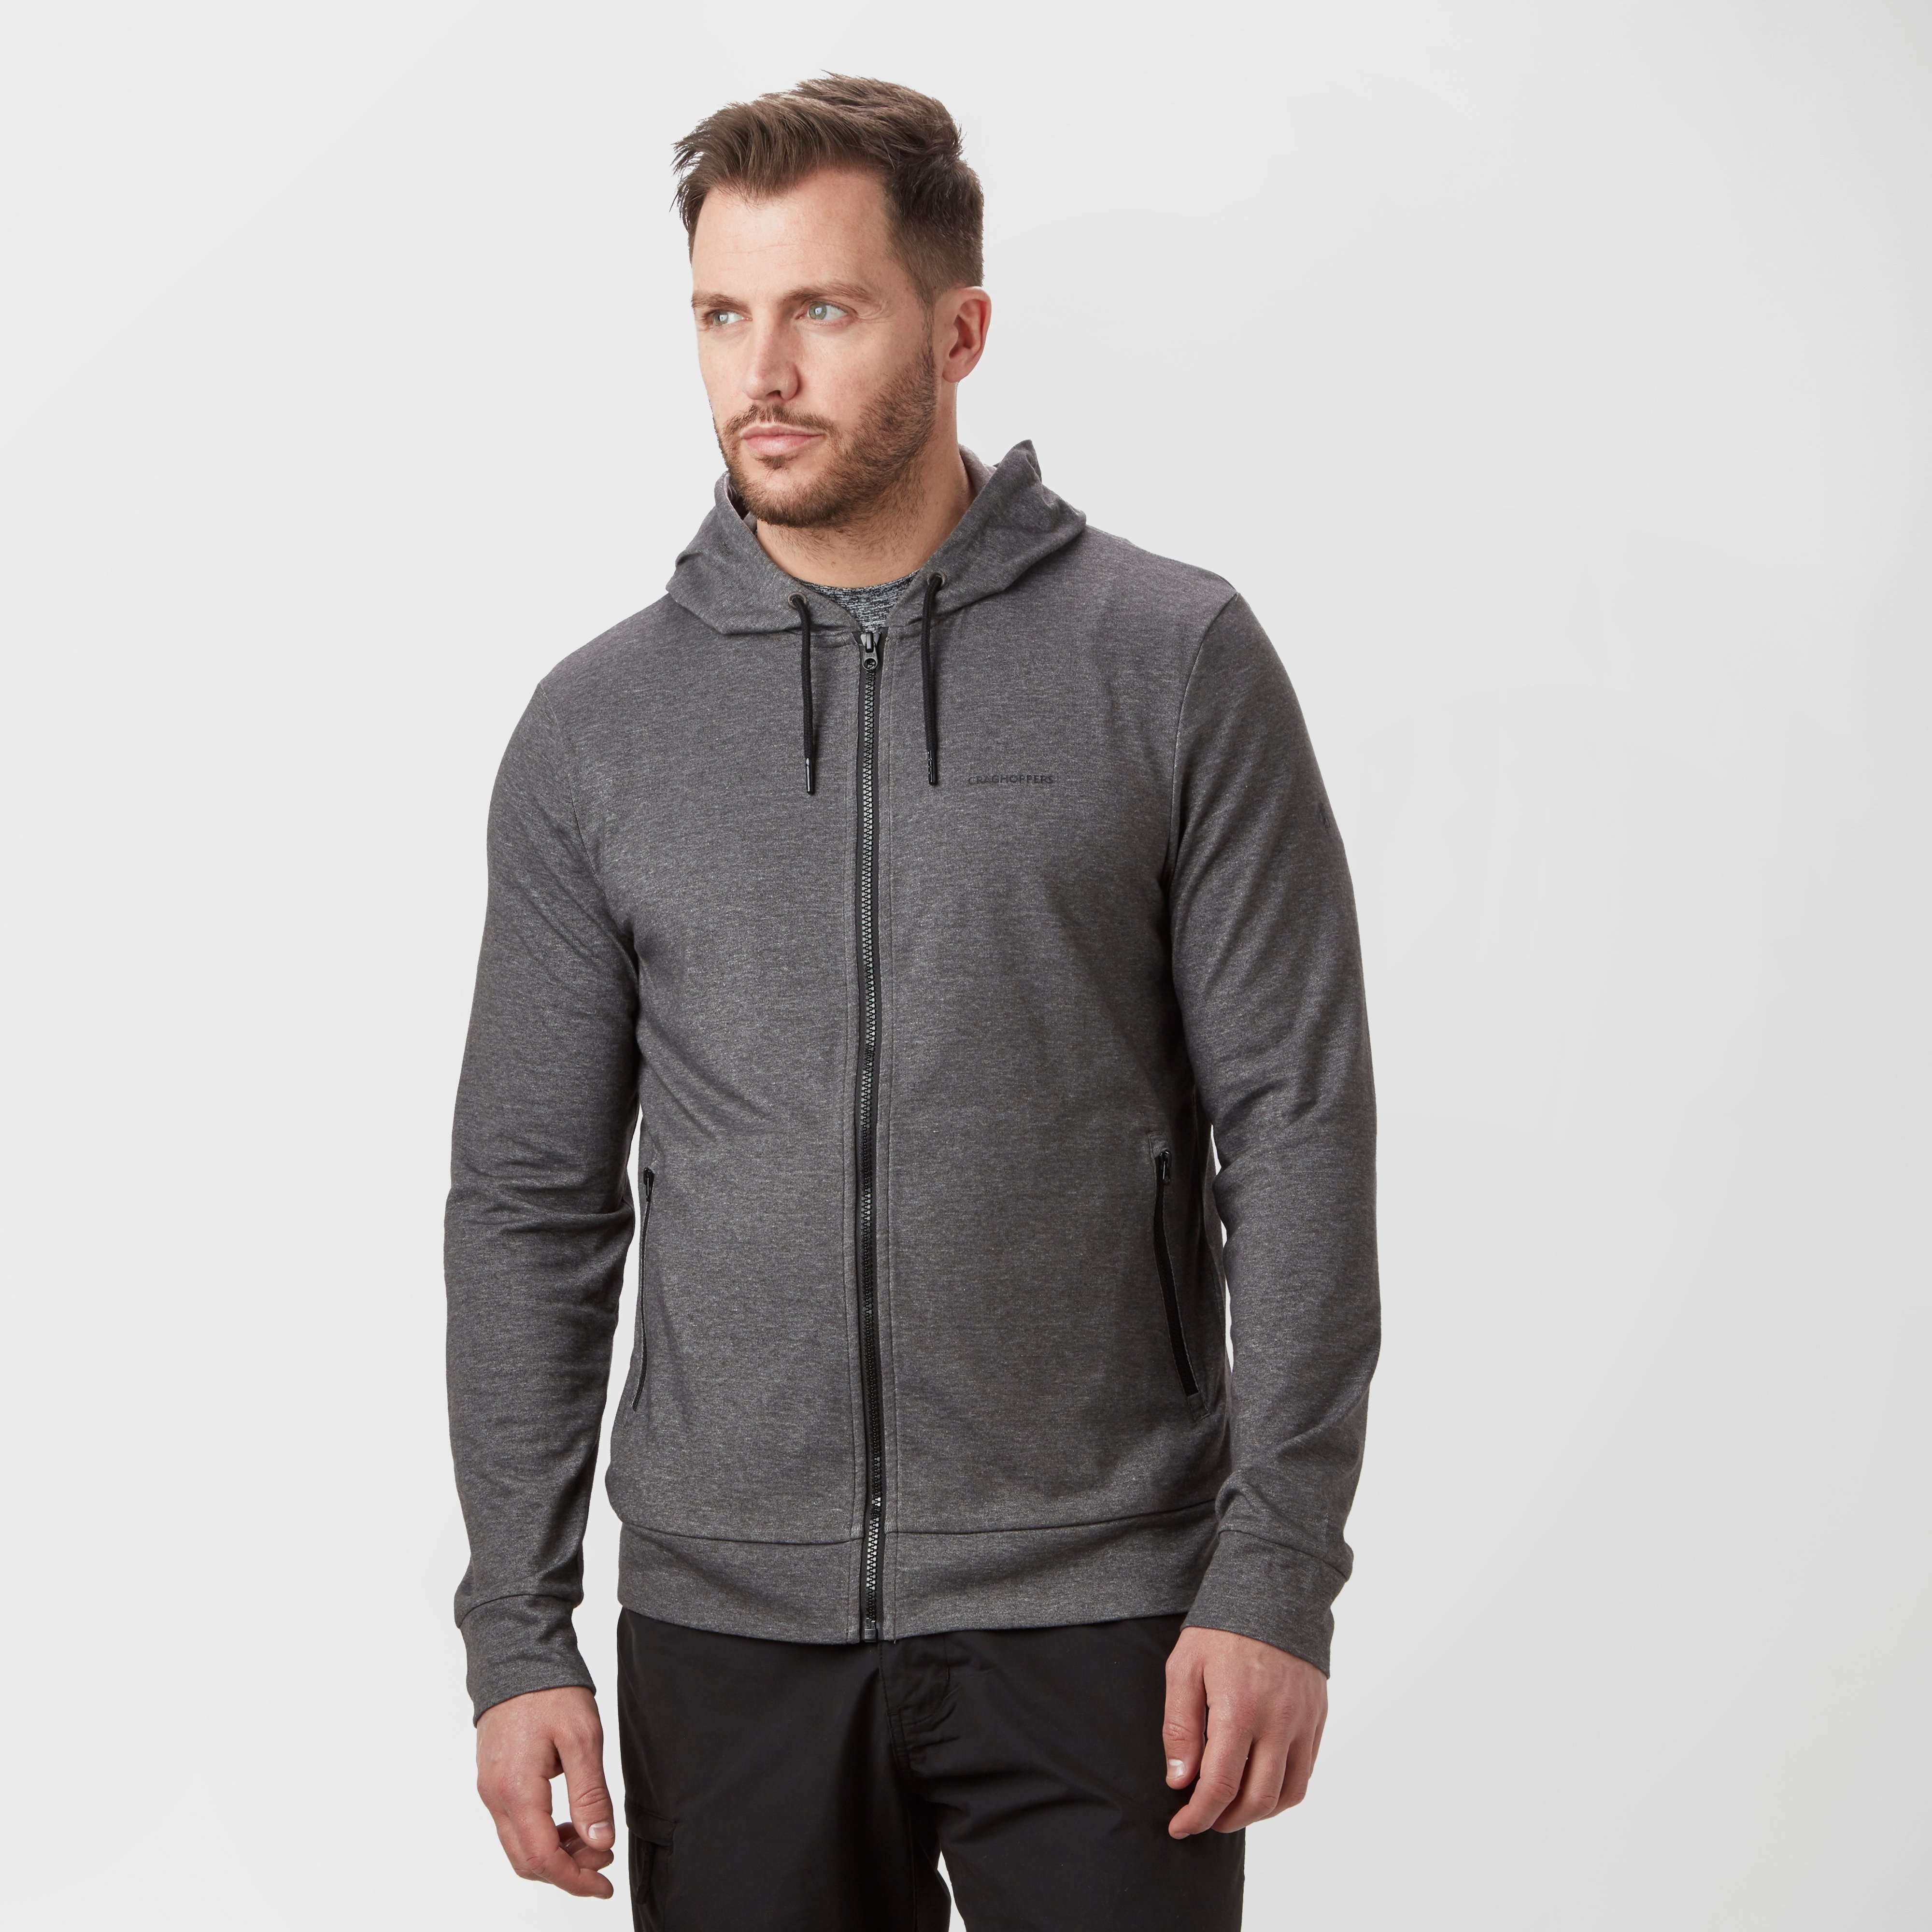 CRAGHOPPERS Men's Nosilife Tilpa Hooded Fleece Jacket